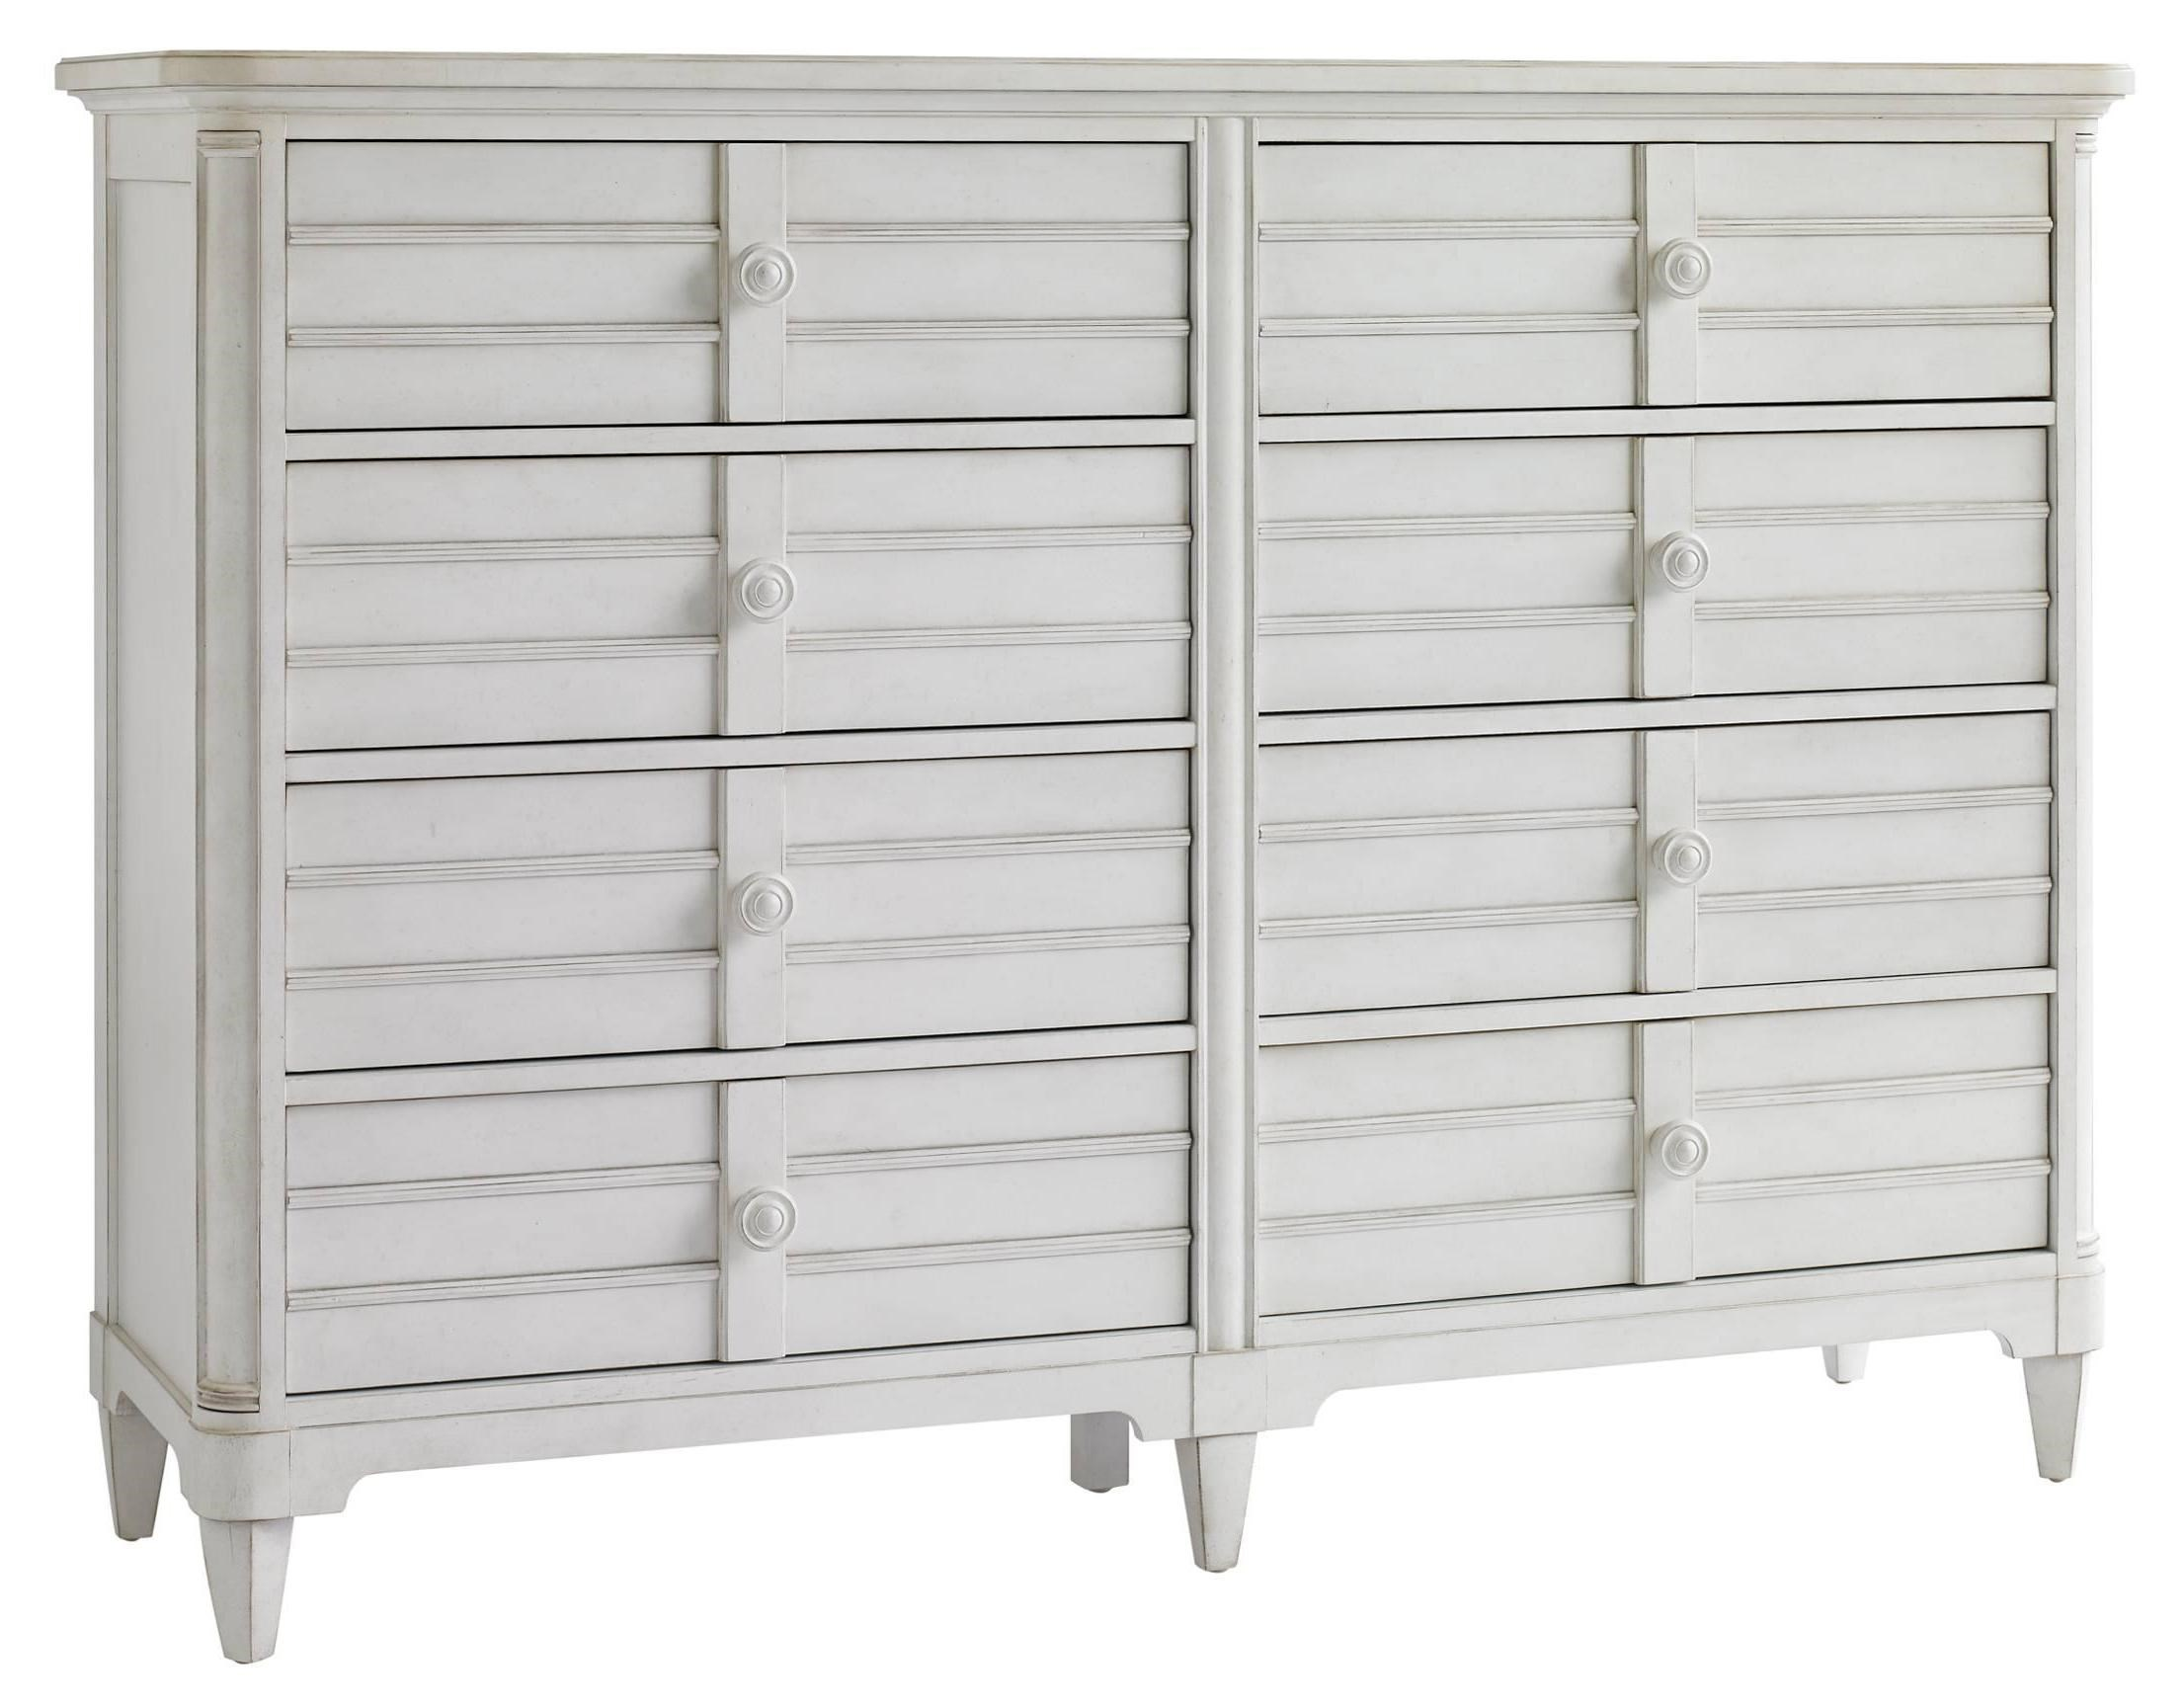 White 8 Drawer Dresser Cypress Grove 8 Drawer Cottage Style Dresser With Louvered Drawer Fronts By Stanley Furniture At Baer S Furniture